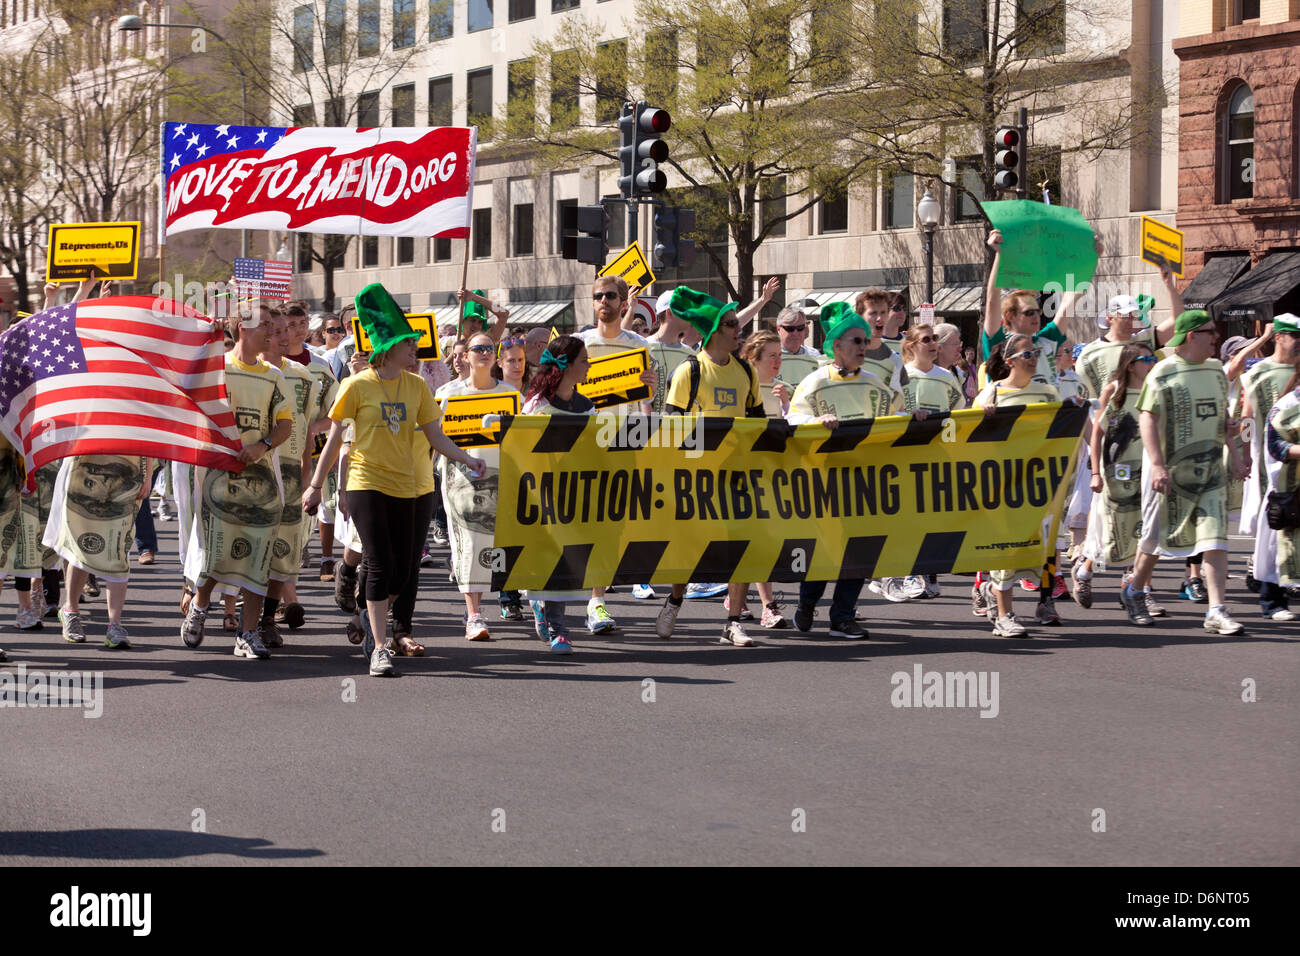 Represent Us supporters rally against political corruption in the US Government, Washington DC - Stock Image